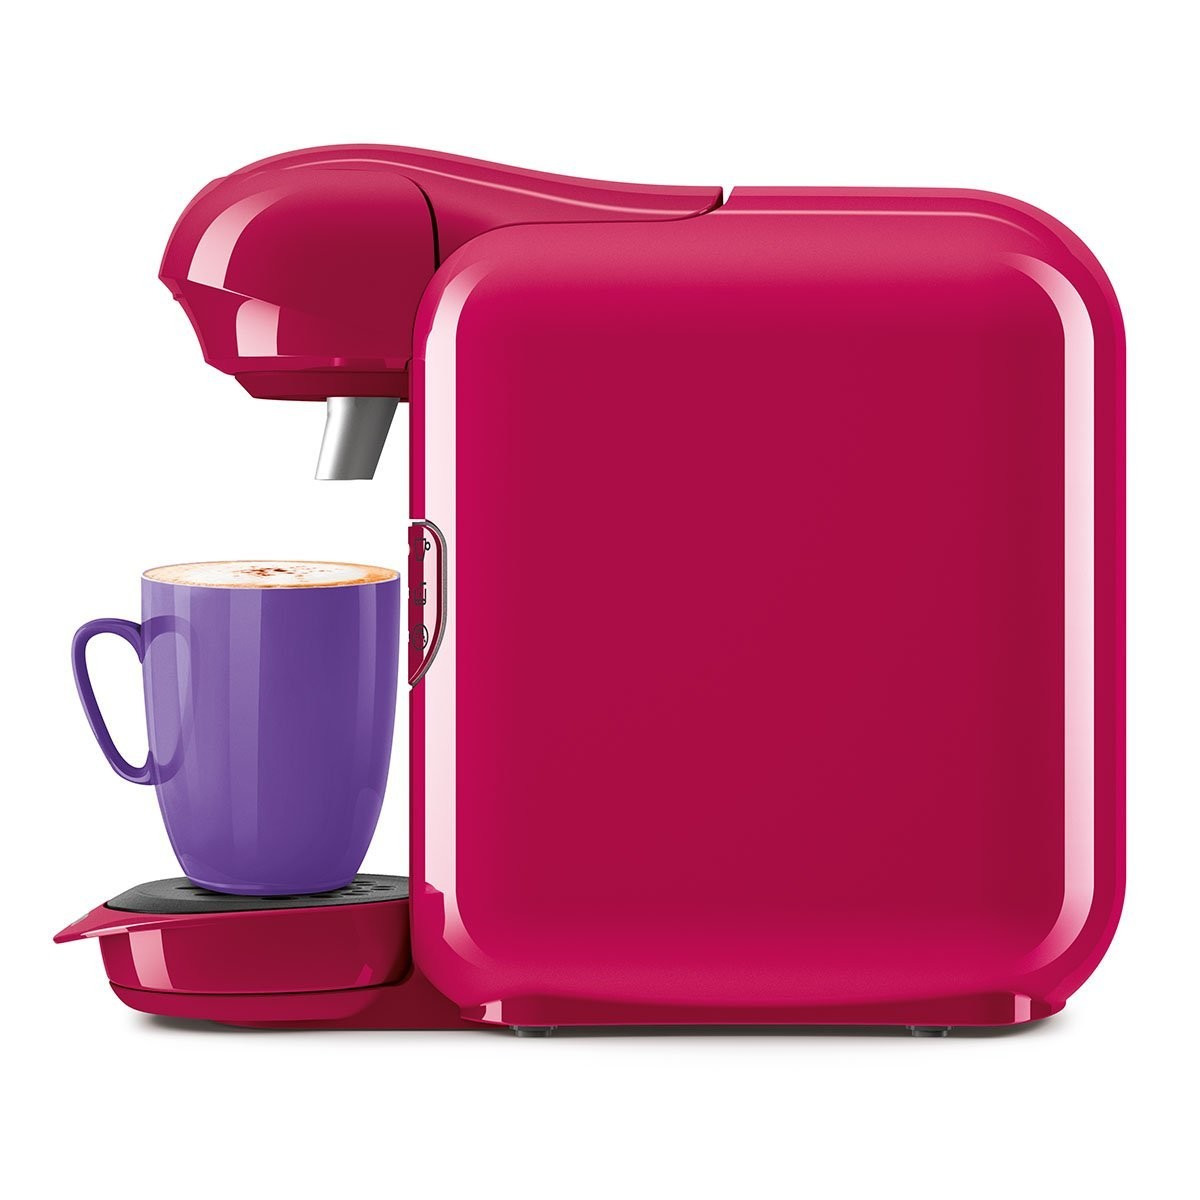 bosch tas1401 tassimo vivy 2 kapselmaschine pink. Black Bedroom Furniture Sets. Home Design Ideas